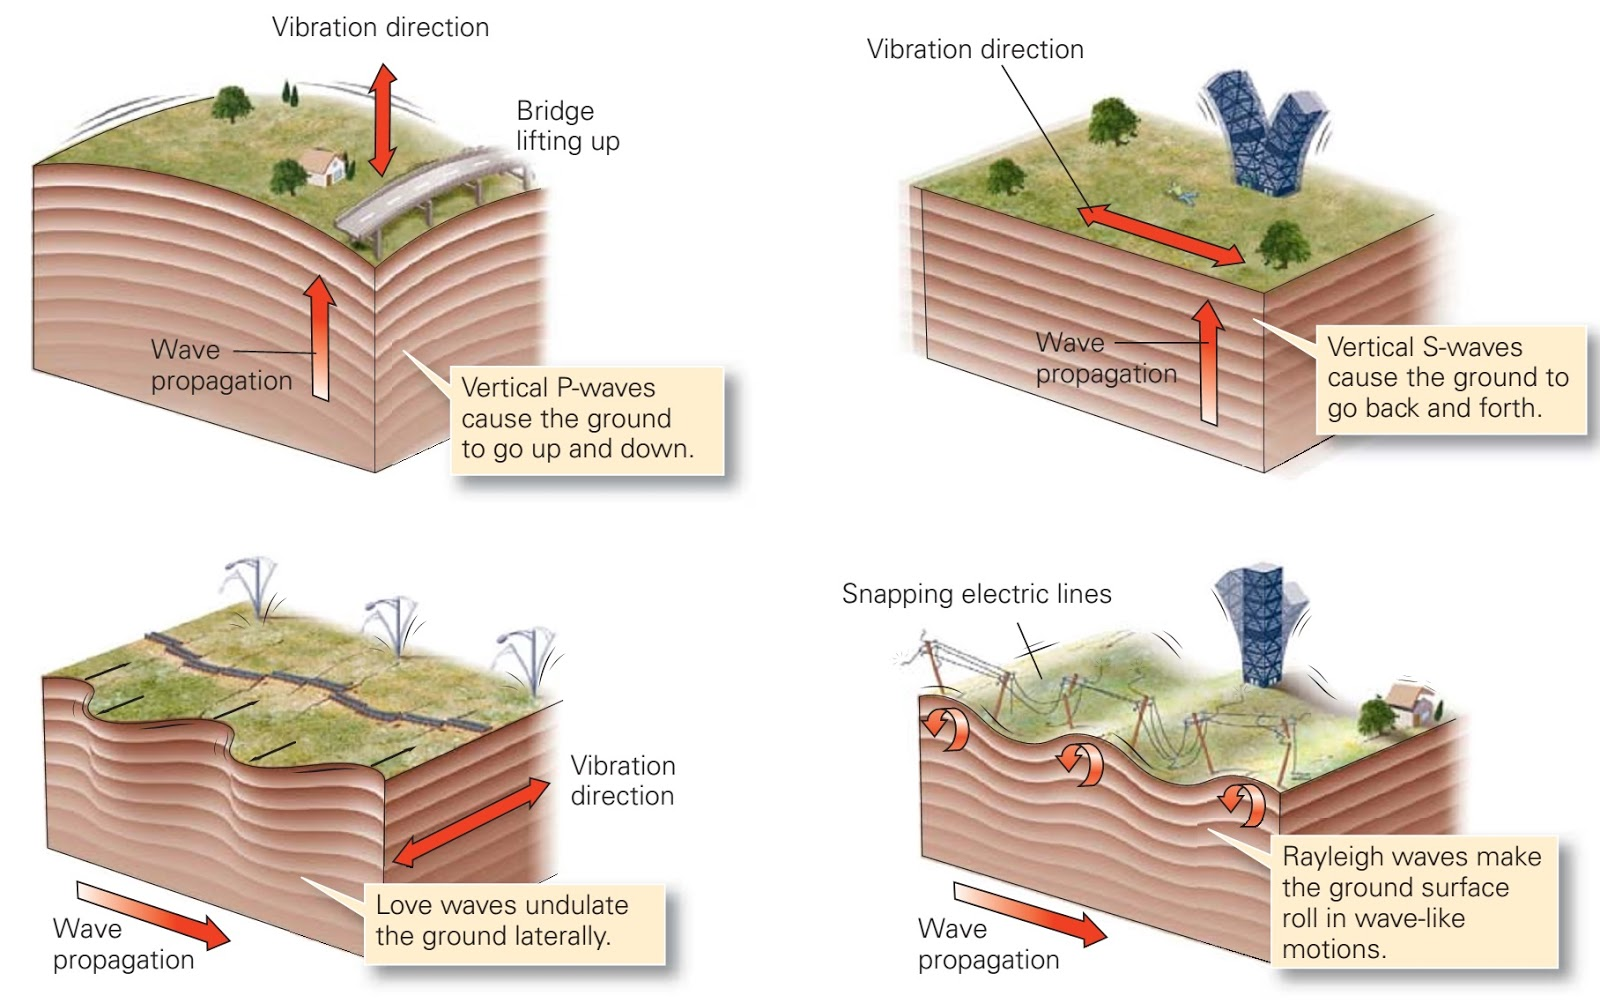 How do Earthquakes causes damage? ~ Learning Geology